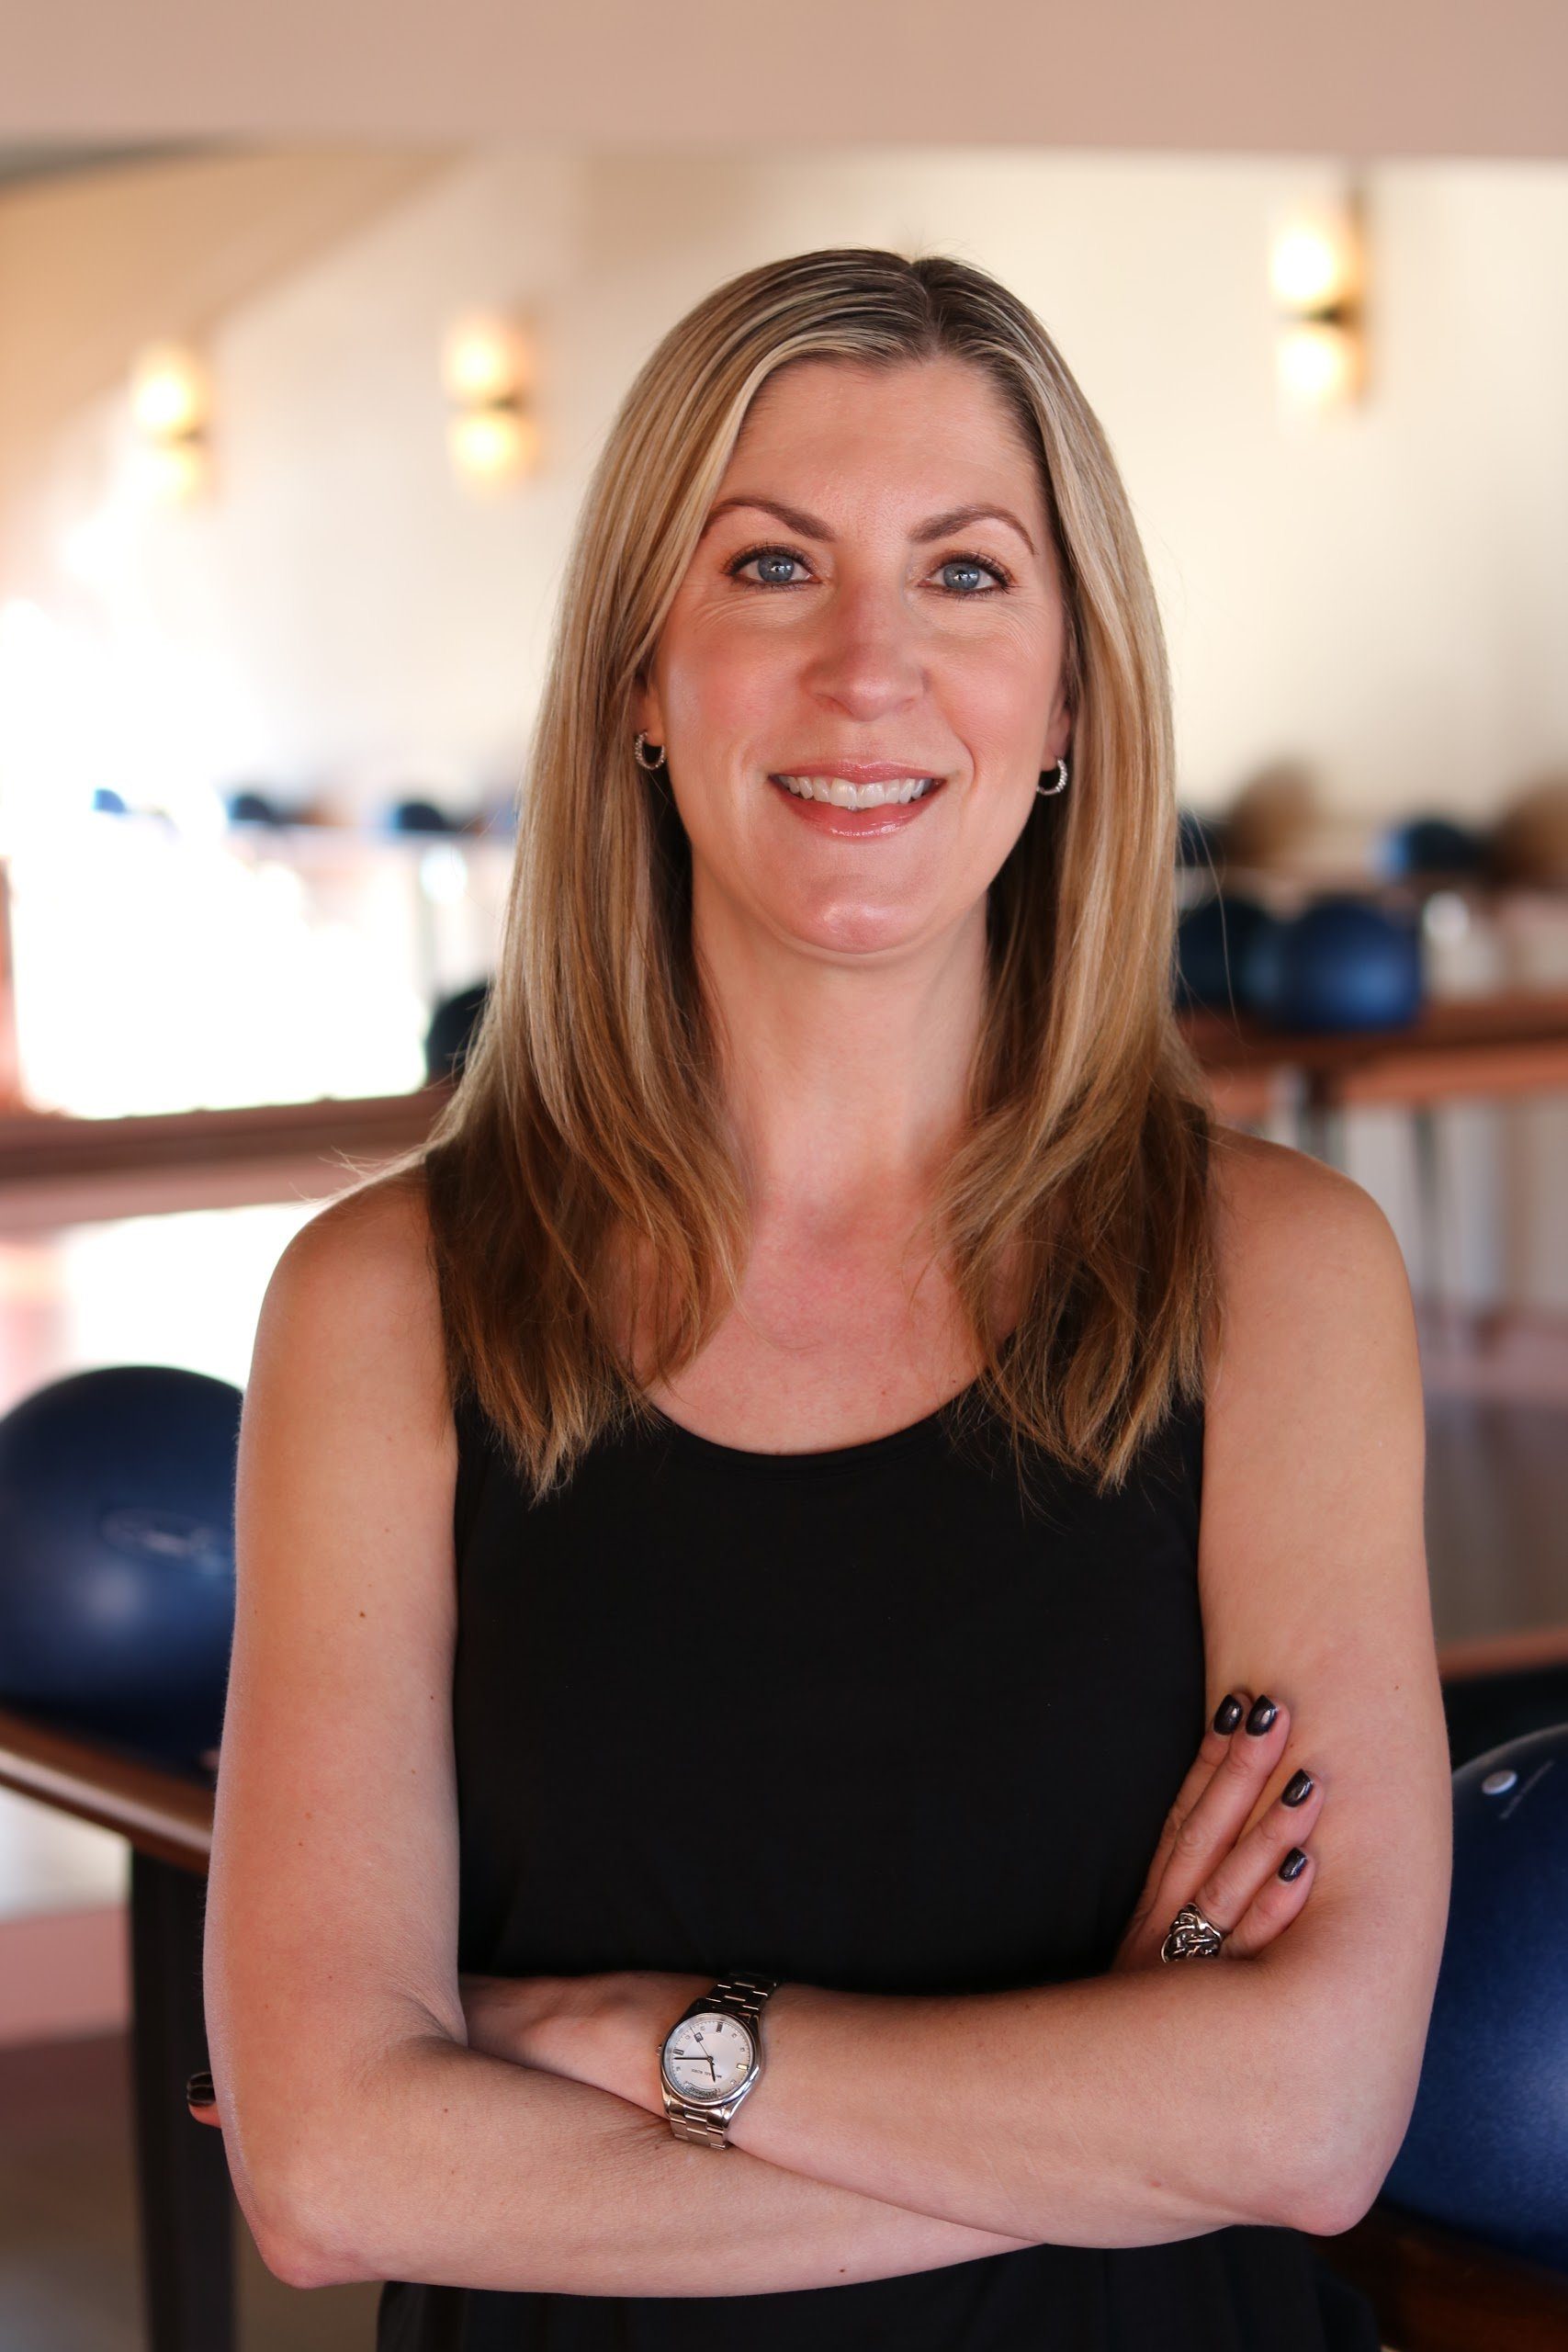 Cindi Horkey // Instructor  Outside the studio, Cindi enjoys reading, biking (both outdoor and indoor spinning), hiking and golfing with her husband Jim. They have two cats, Scout and Archie (he's a big one – 20 lbs!)